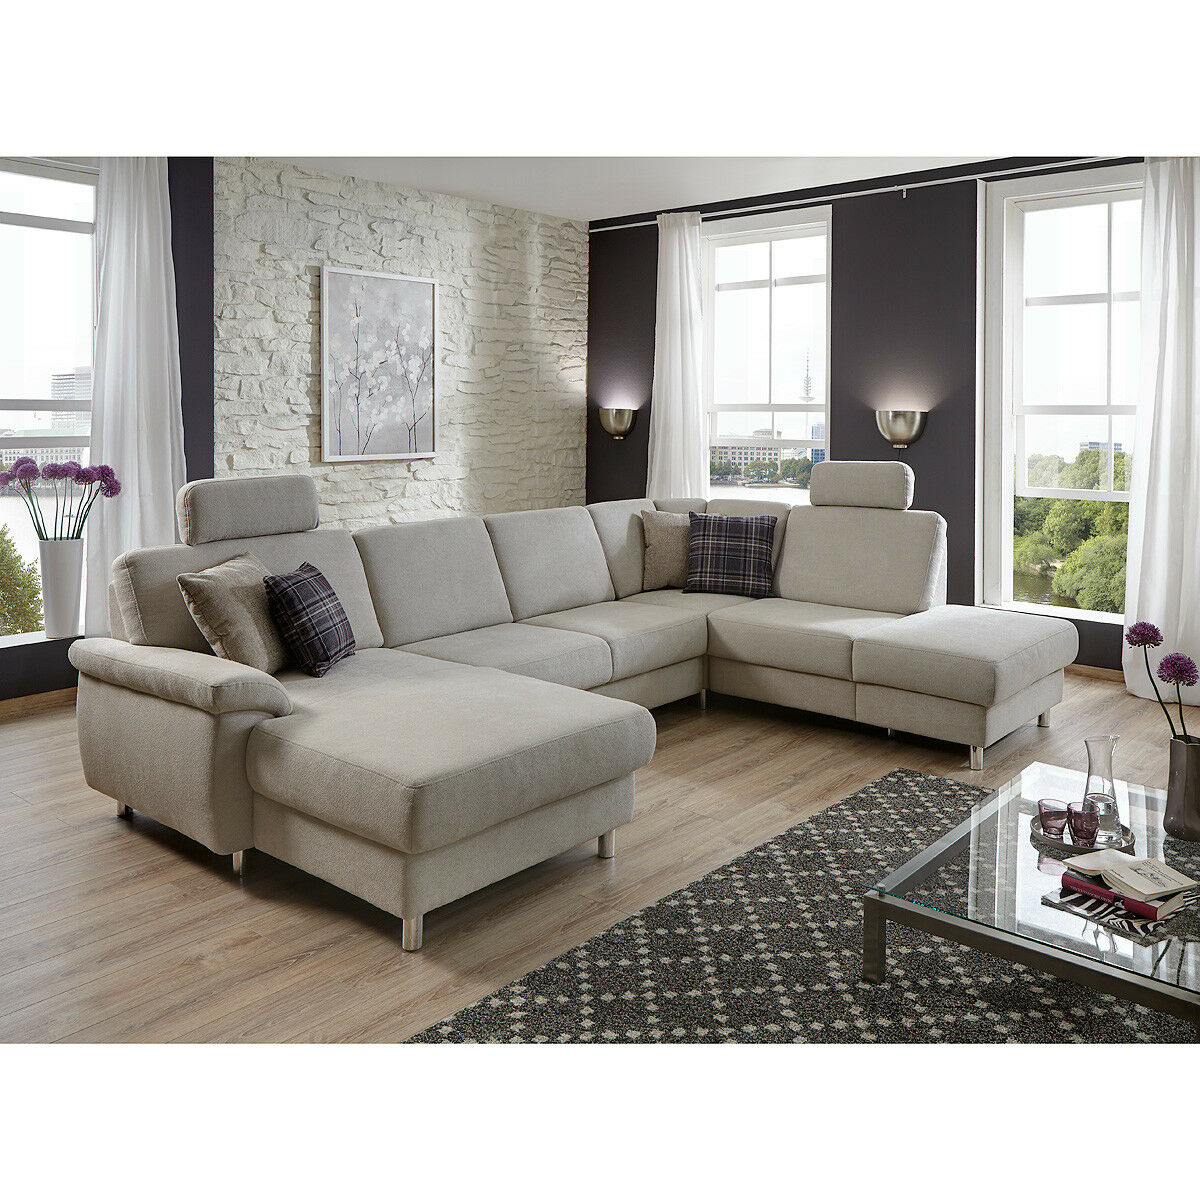 wohnlandschaft winston ecksofa sofa polsterm bel u form in grau wei 321 cm eur 999 95. Black Bedroom Furniture Sets. Home Design Ideas